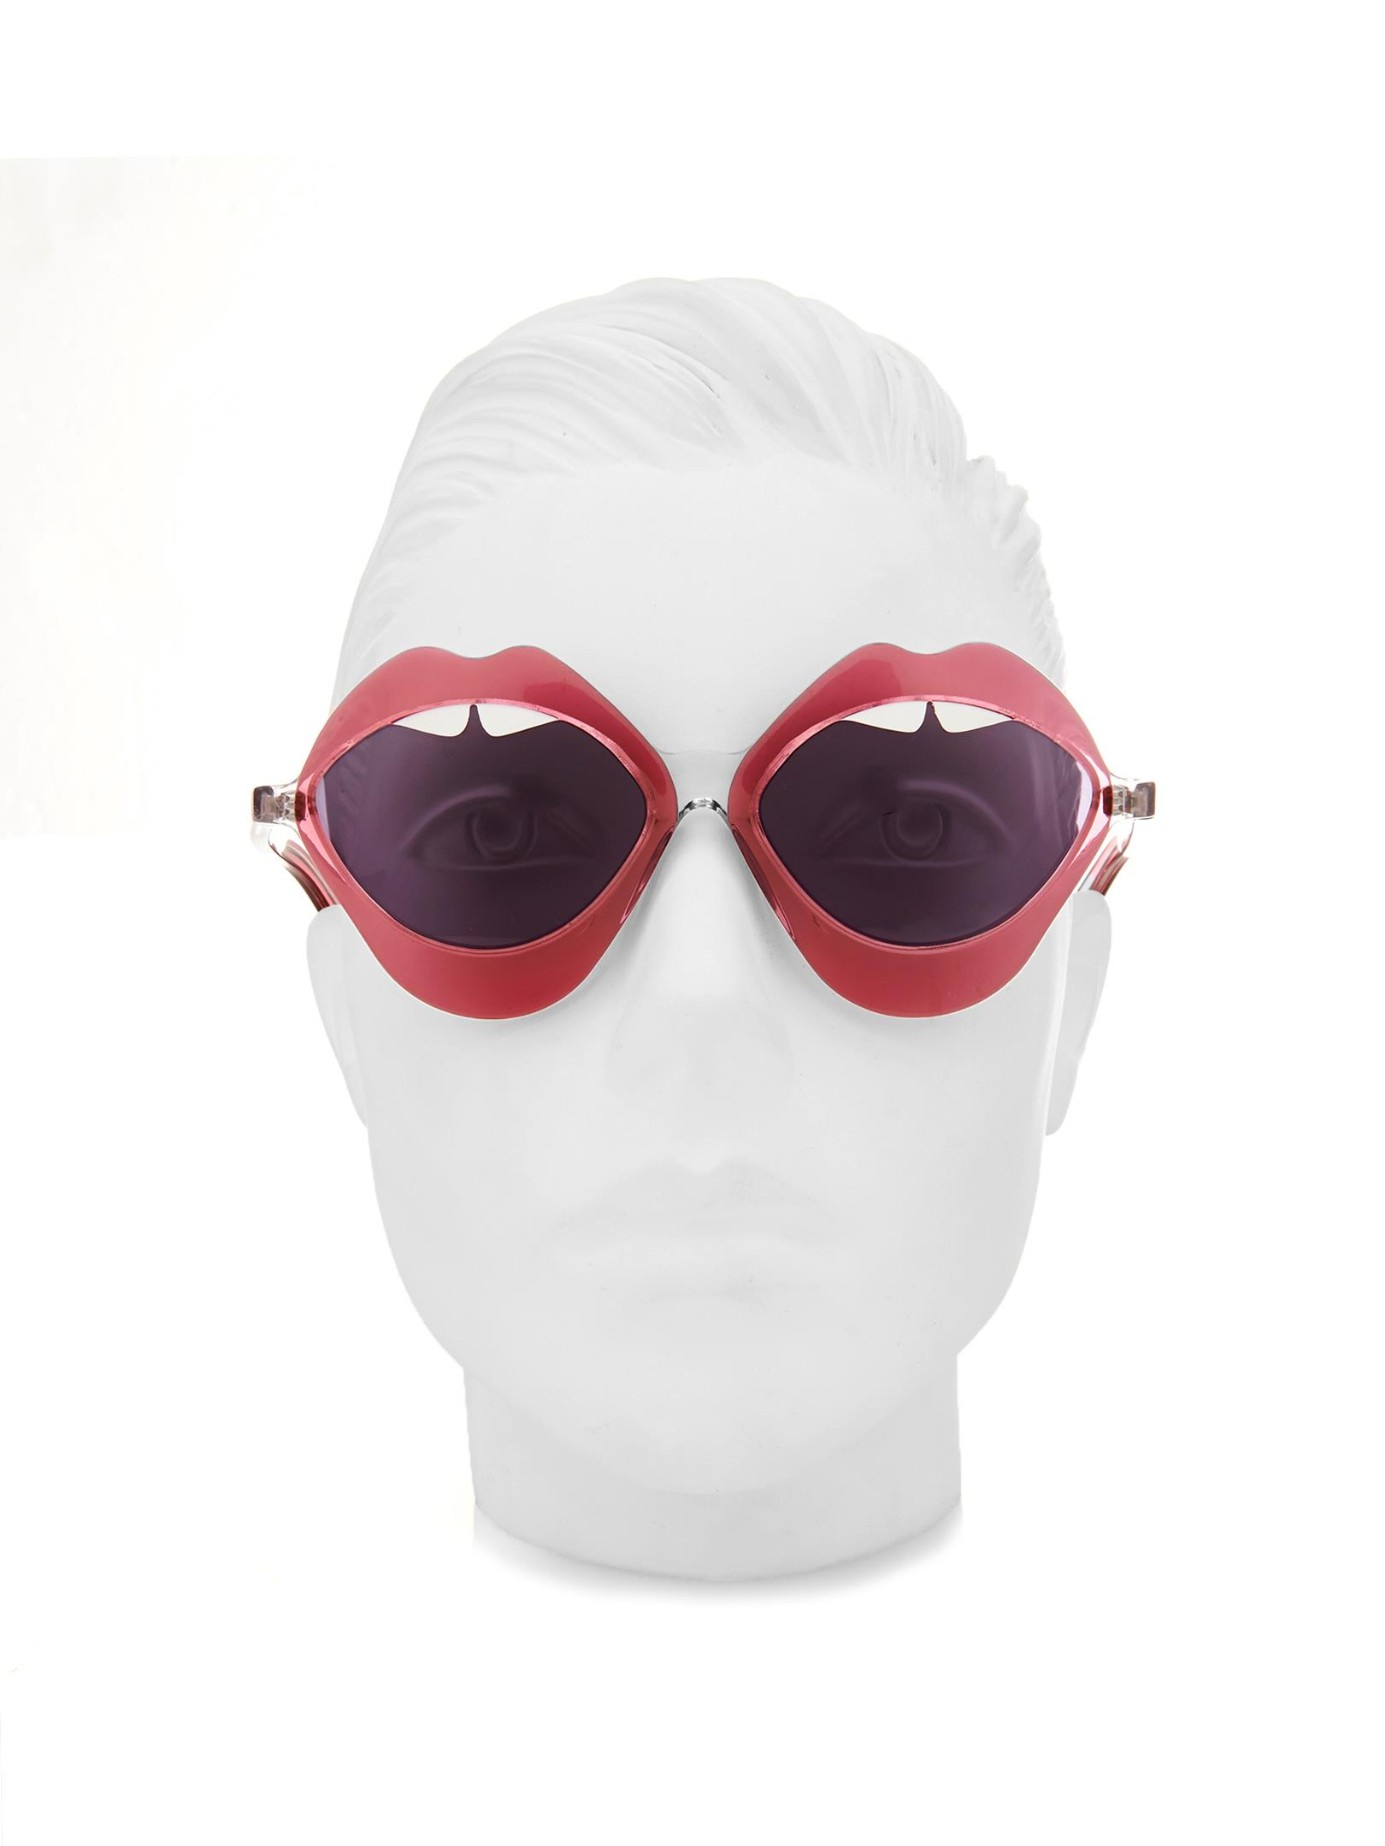 House of Holland Lippy Sunglasses in Pink